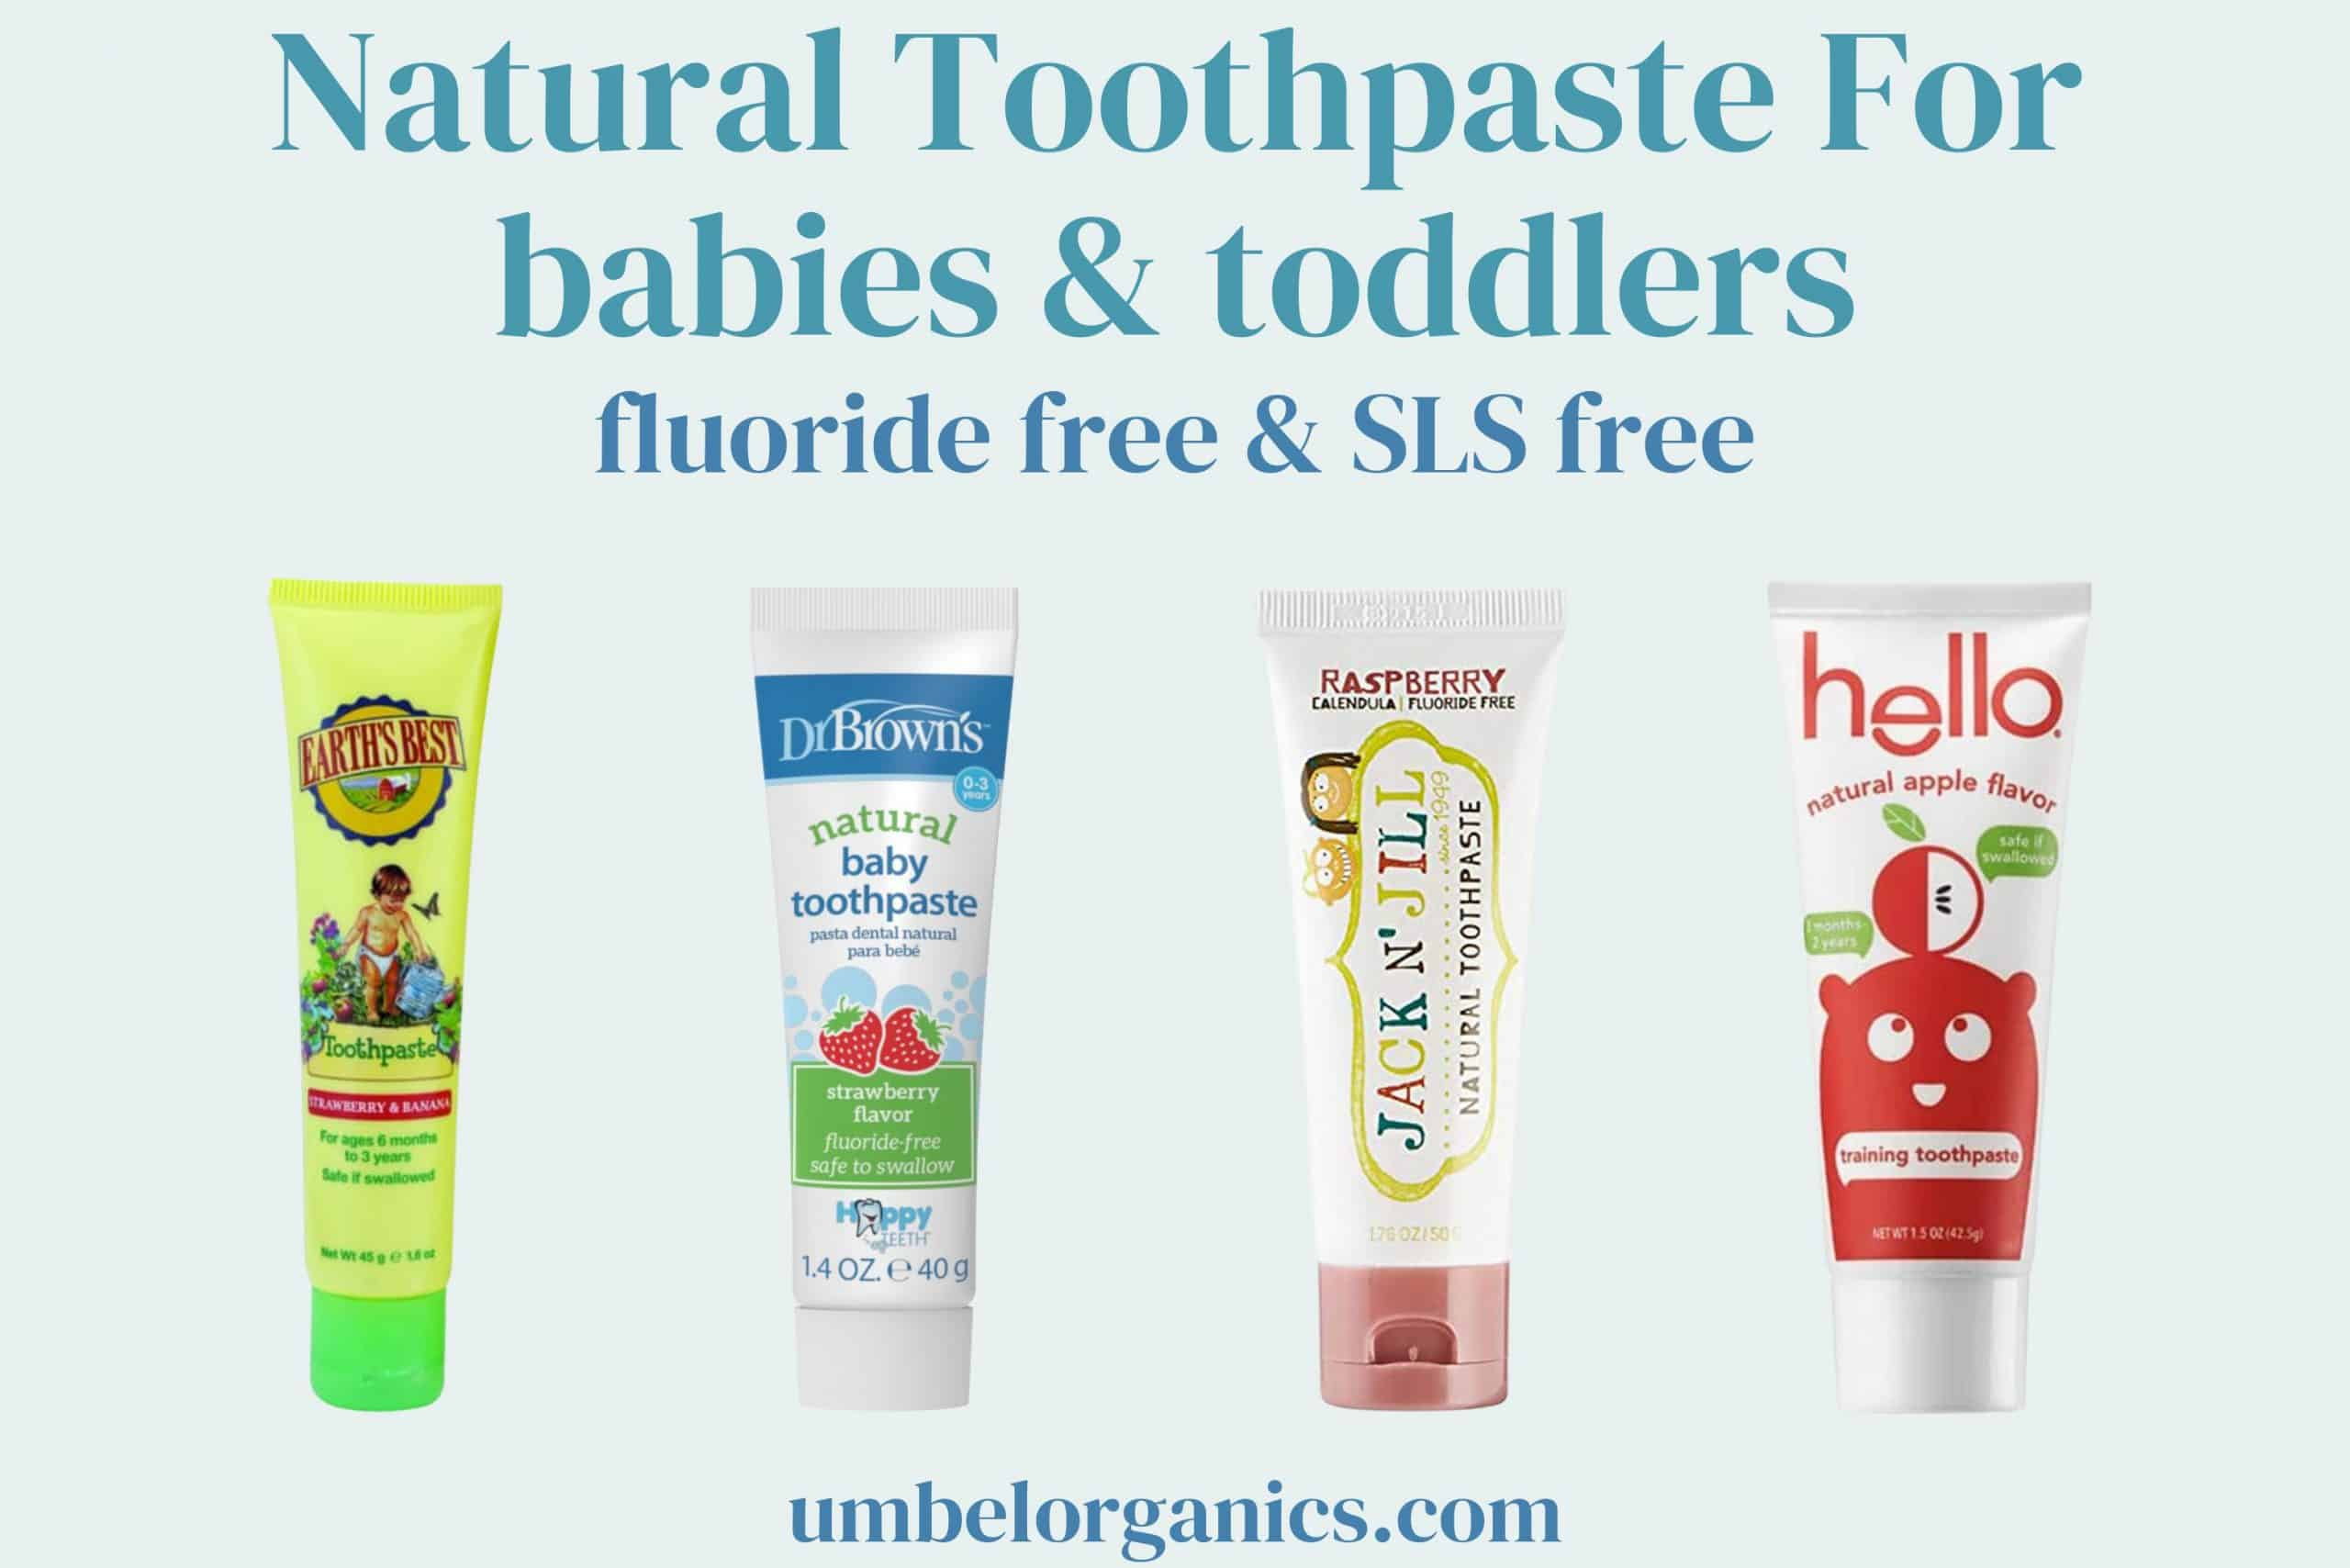 4 brands of natural toothpaste for babies and toddlers